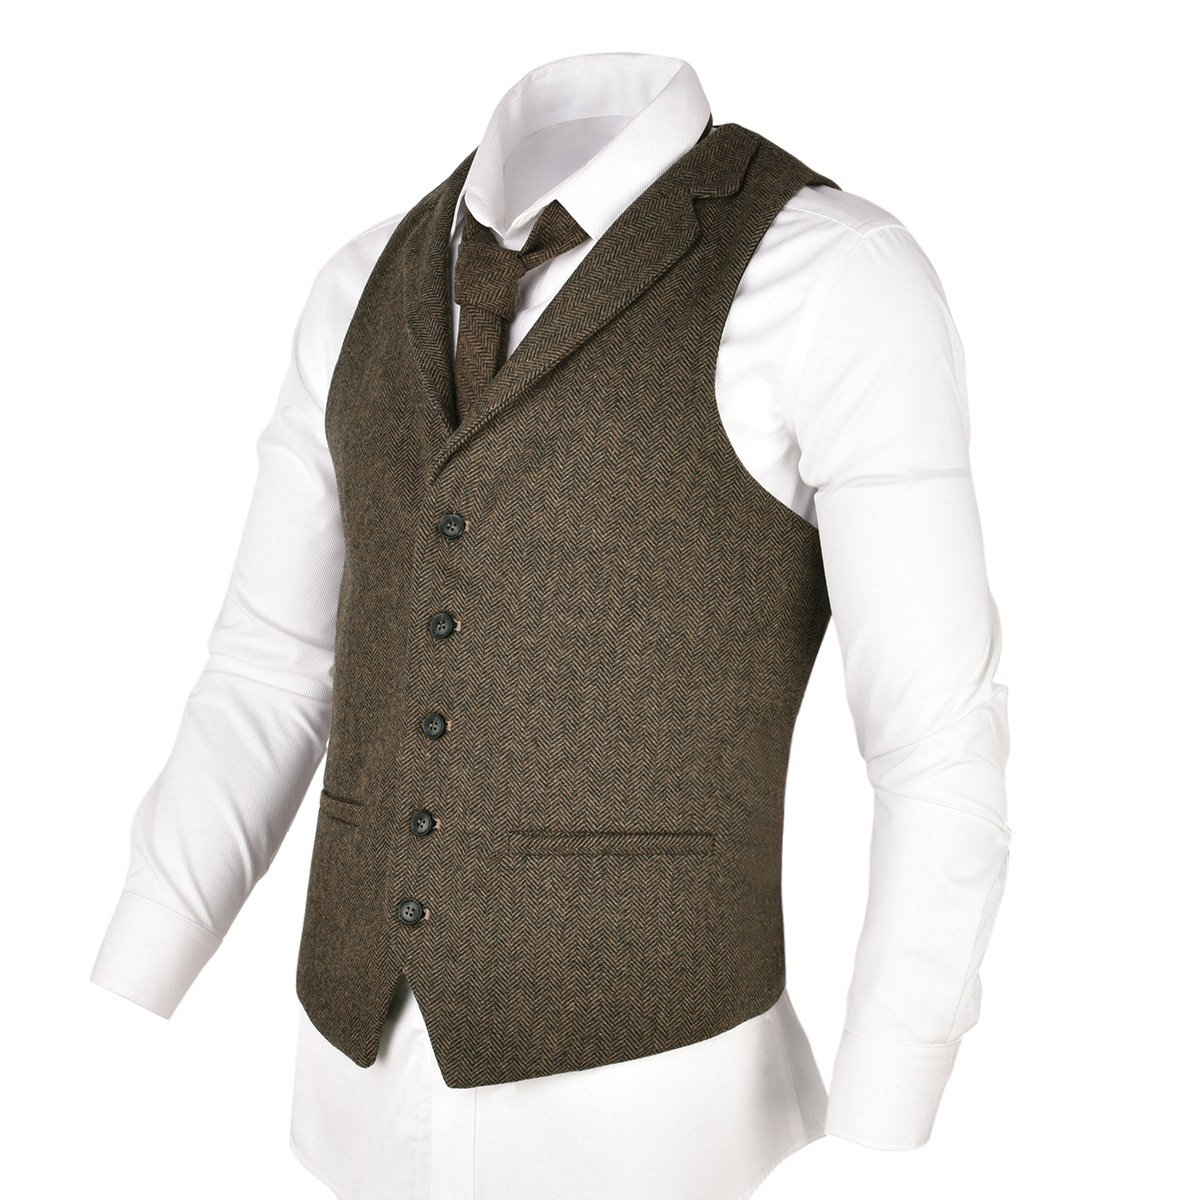 VOBOOM Mens Herringbone Tailored Collar Waistcoat Fullback Wool Tweed Suit Vest (Khaki, M) by VOBOOM